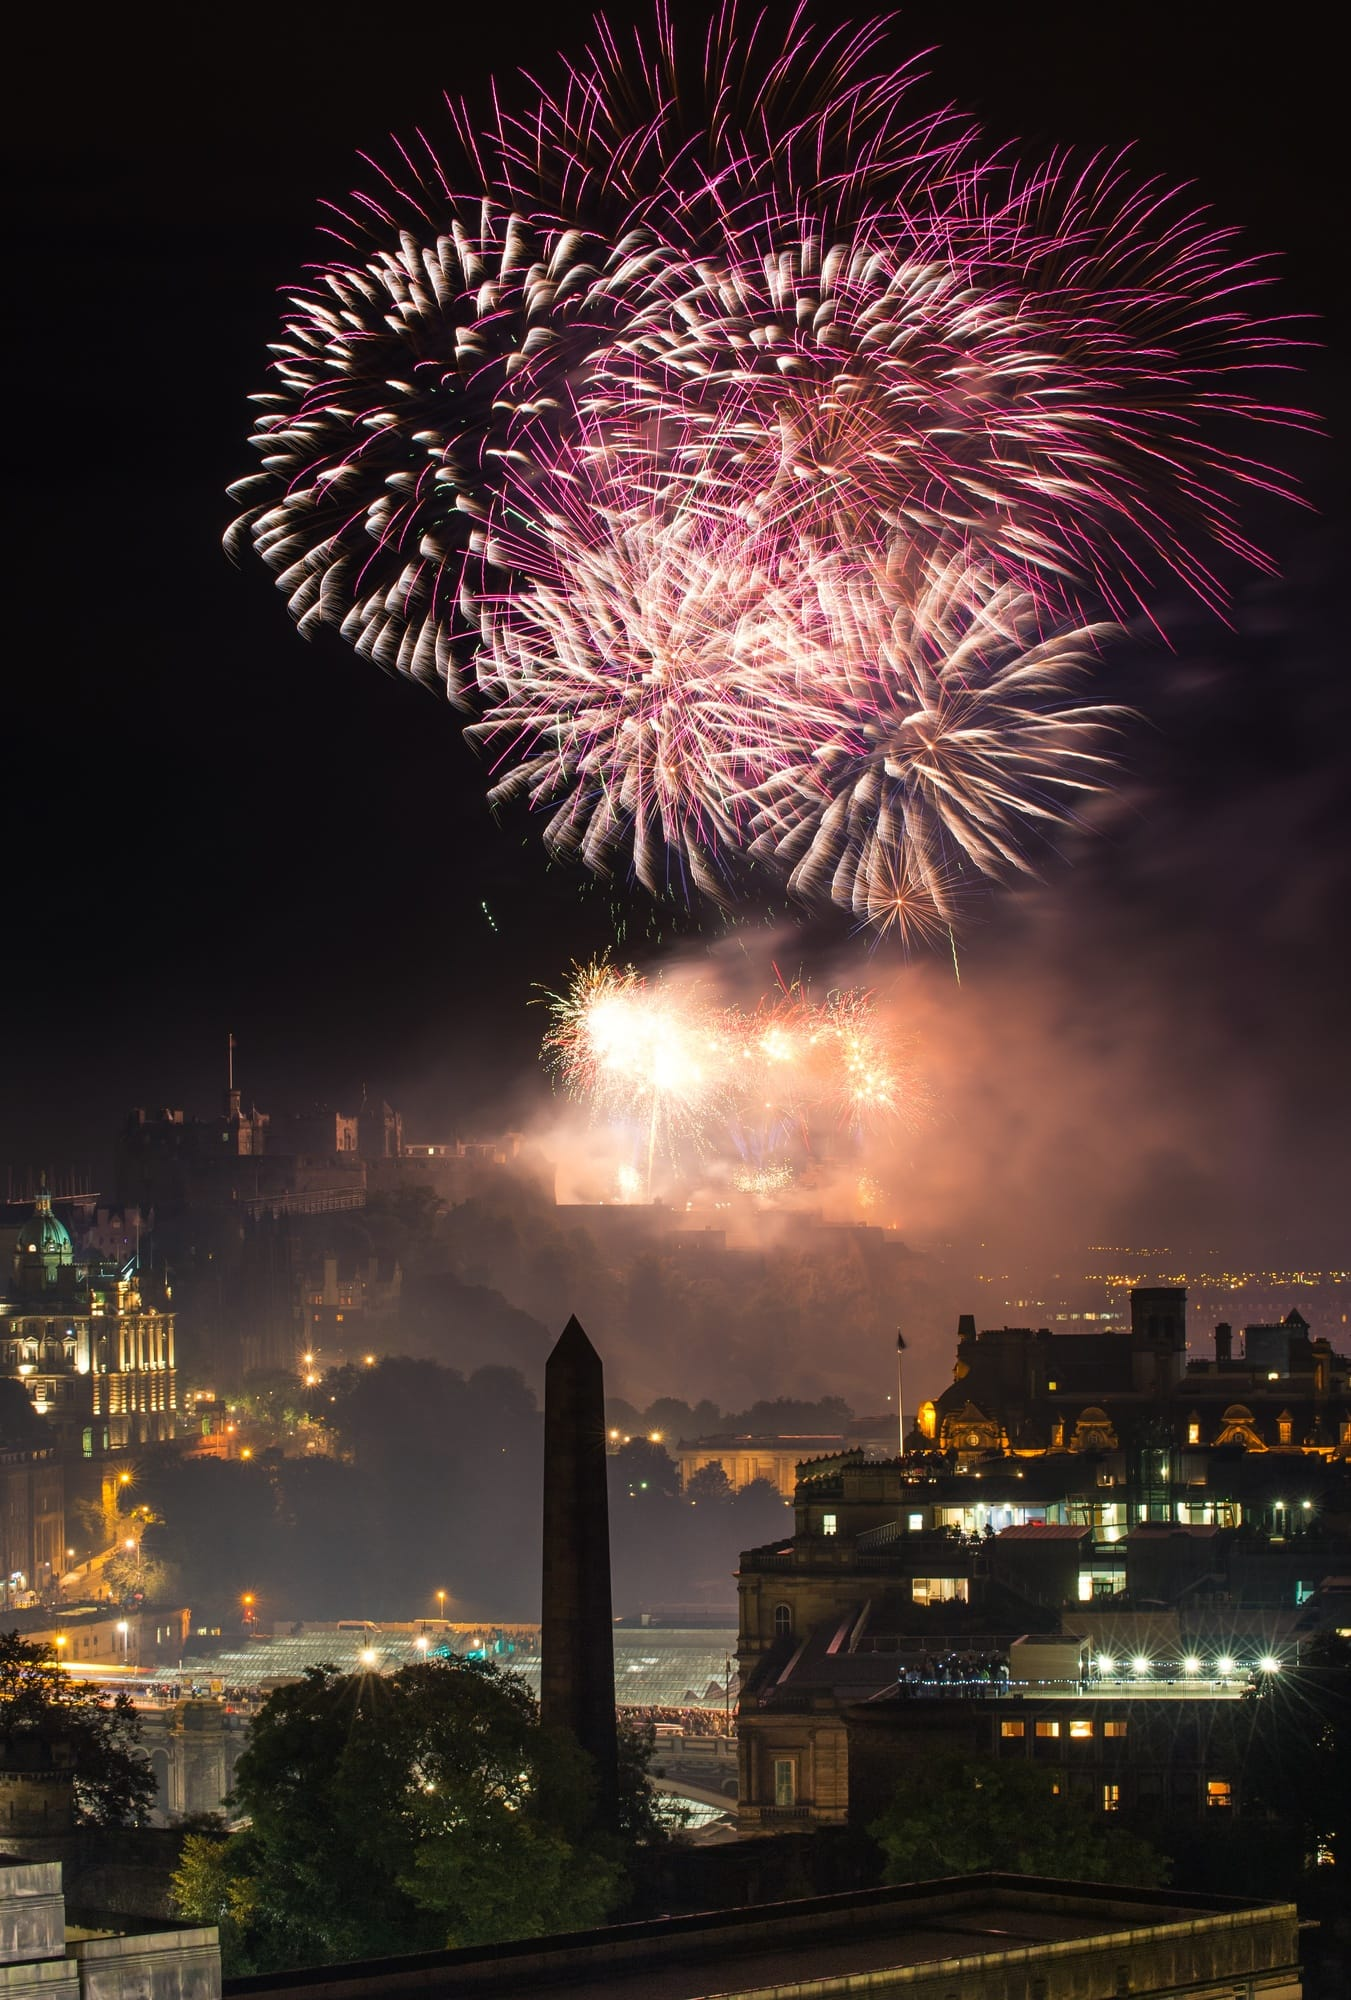 Fireworks over Edinburgh Castle ~ New Year's Eve Traditions from Europe